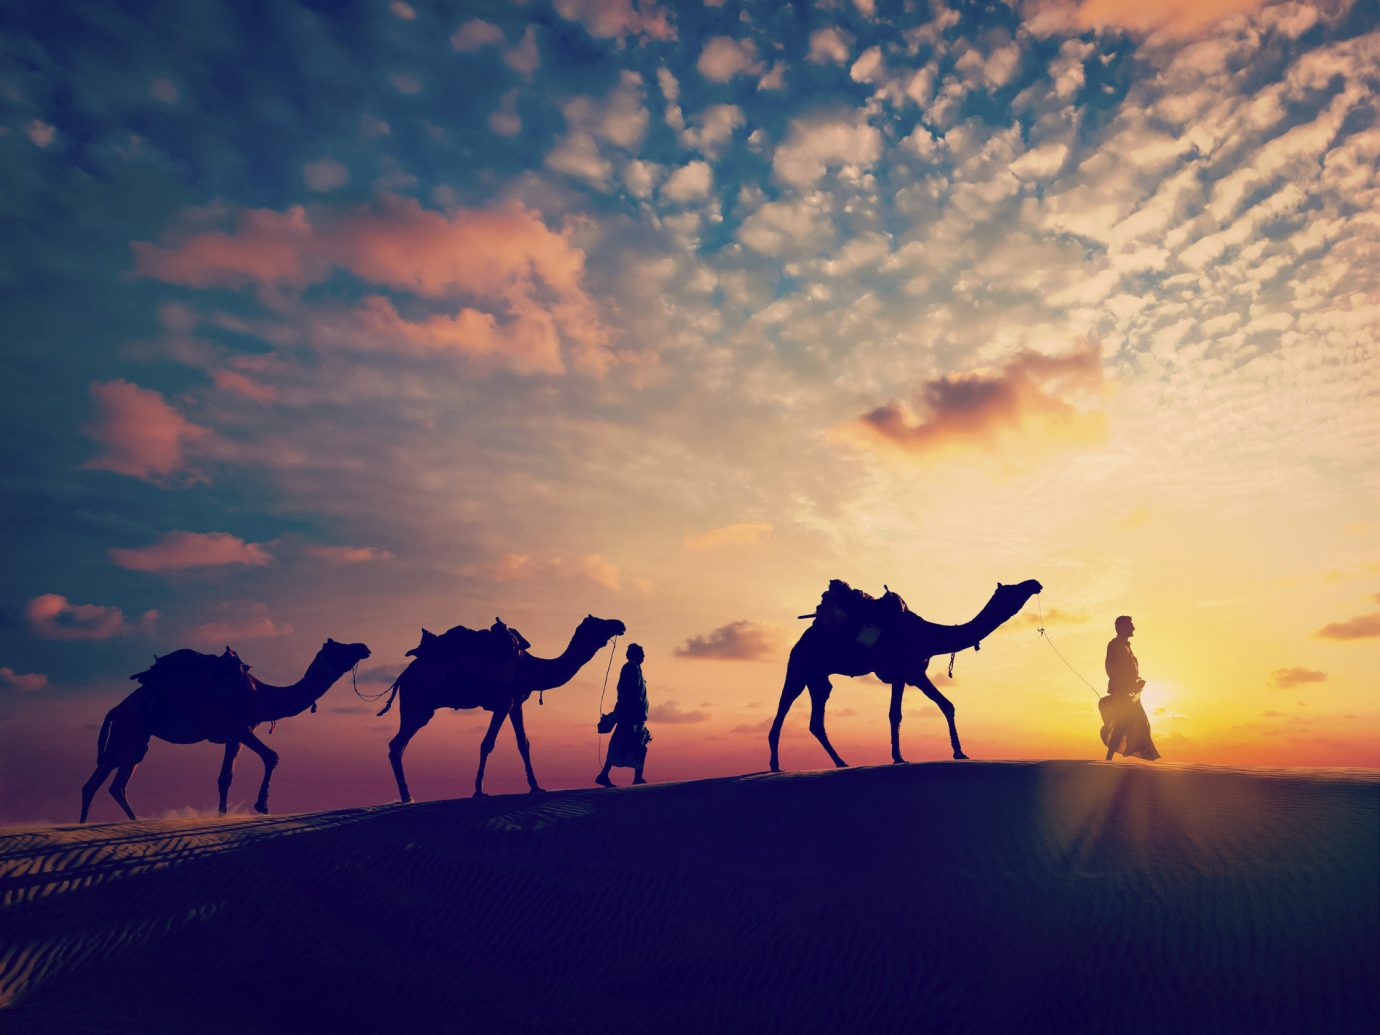 Trip Ideas sky outdoor natural environment Sunset Camel landscape morning sunrise evening plain dawn dusk horse like mammal Desert camel like mammal clouds